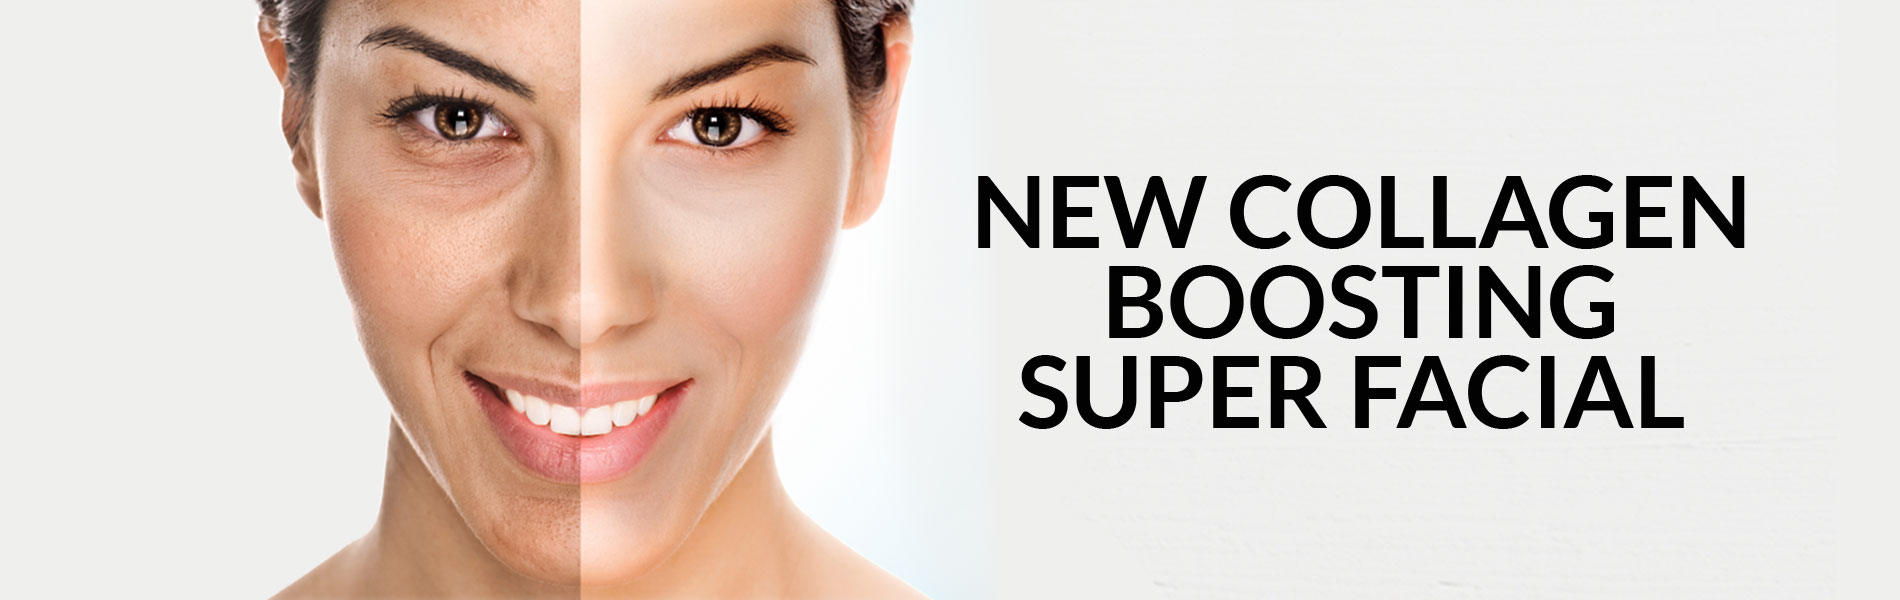 Collections 4 in 1 Collagen Boosting Super Facial